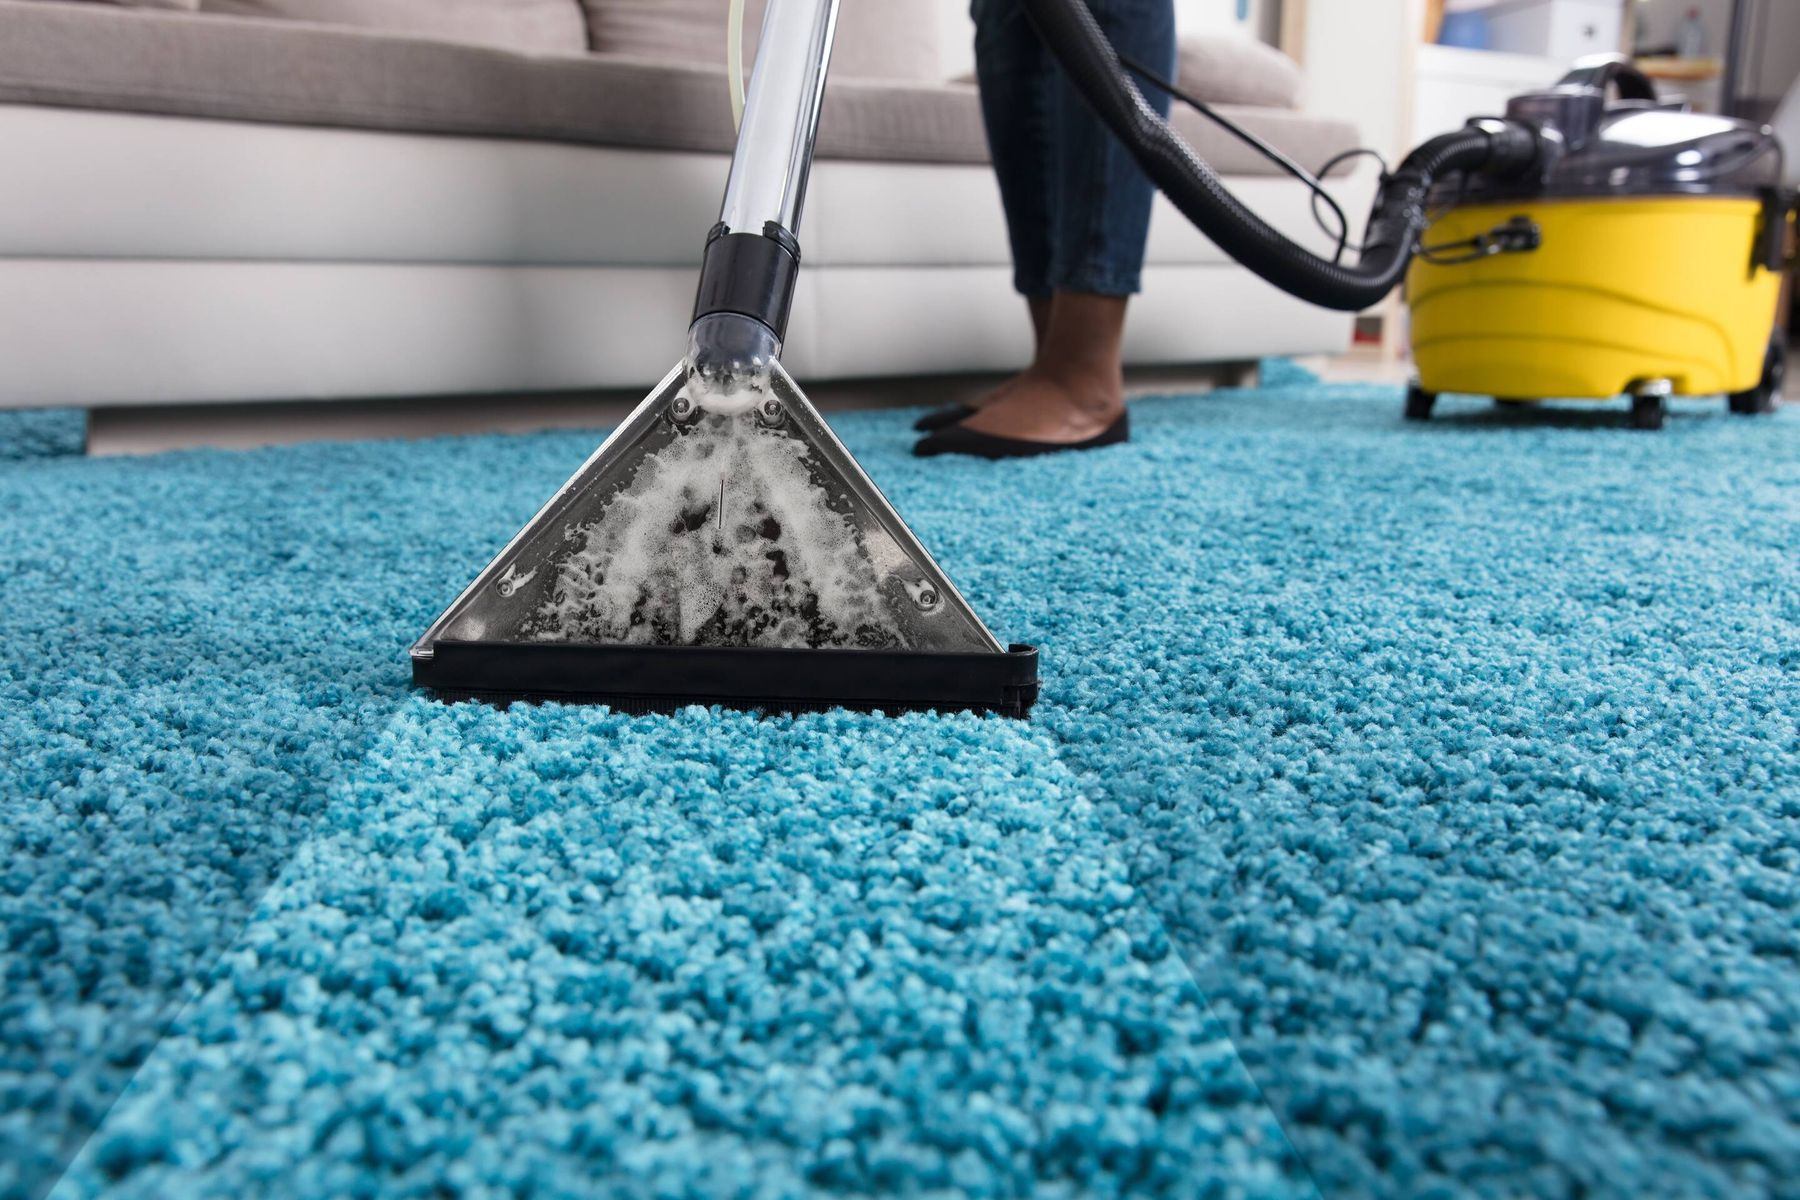 Rug Cleaning & Cleaners | How to Clean a Rug | Cleanipedia